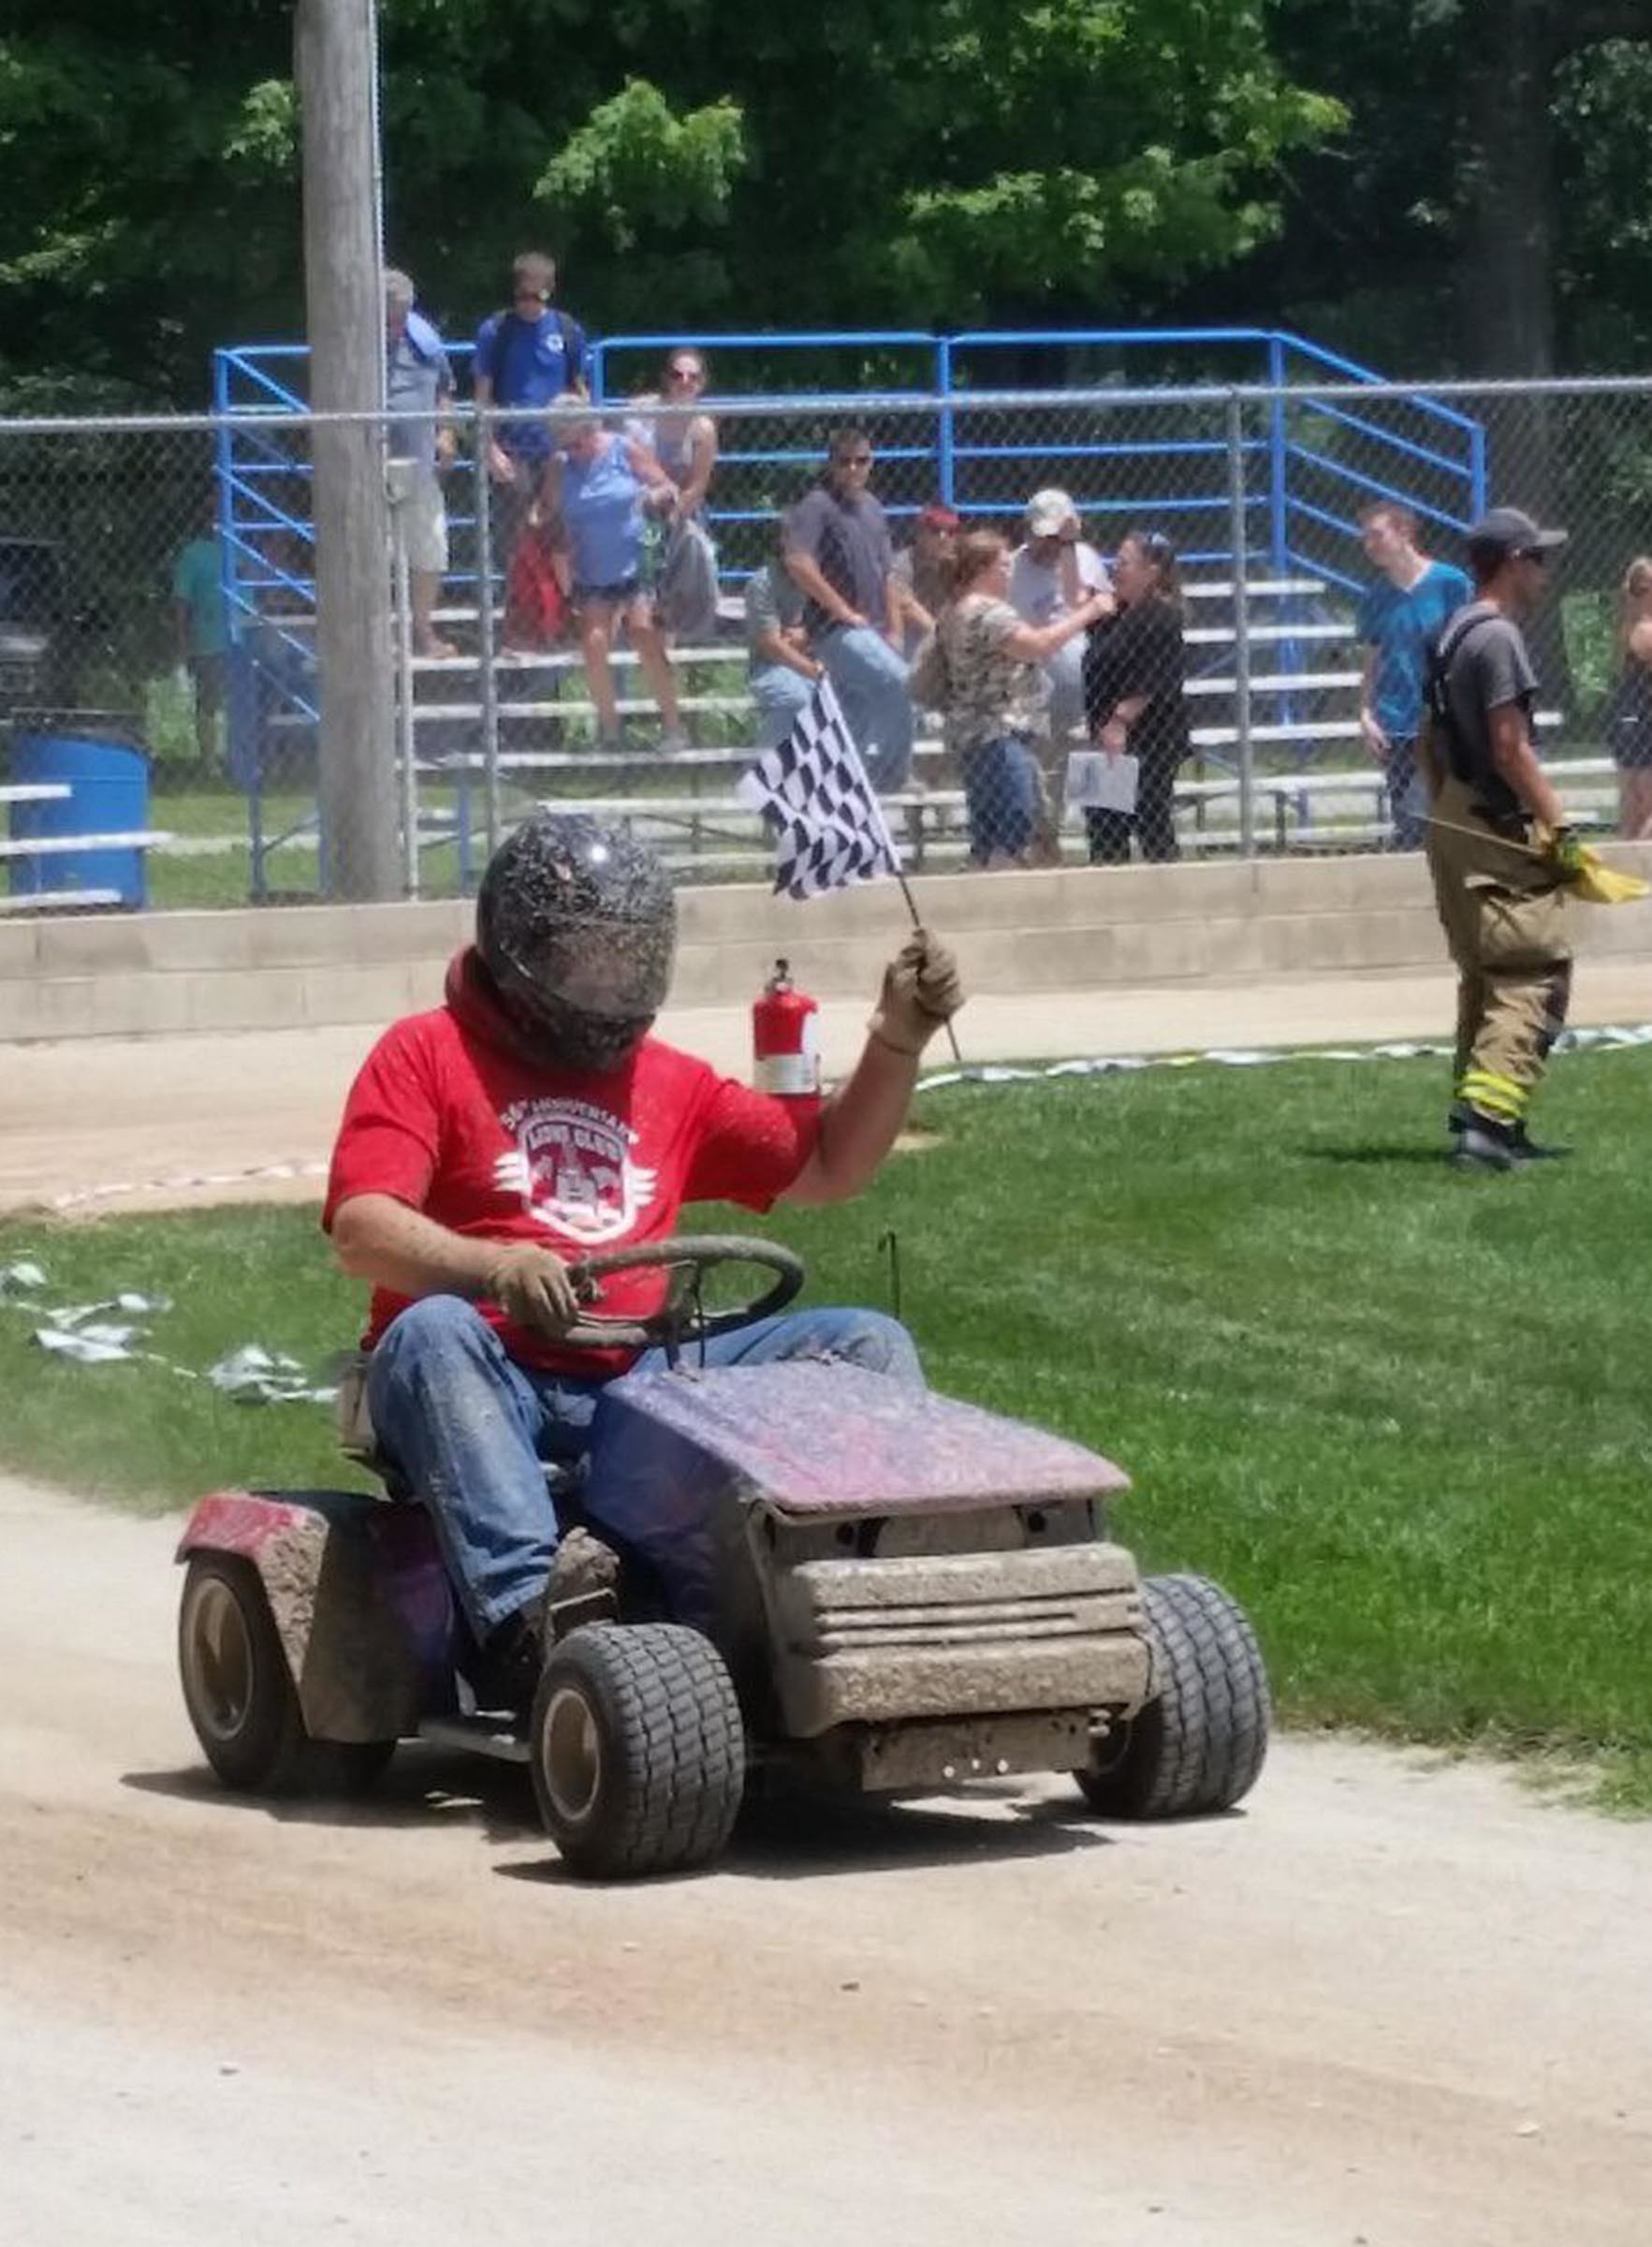 Of Mowers and Men: In Twelve Mile, Indiana, the Fourth of